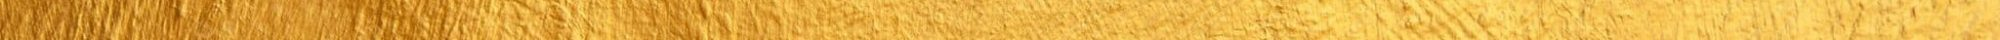 Golden concrete wall background